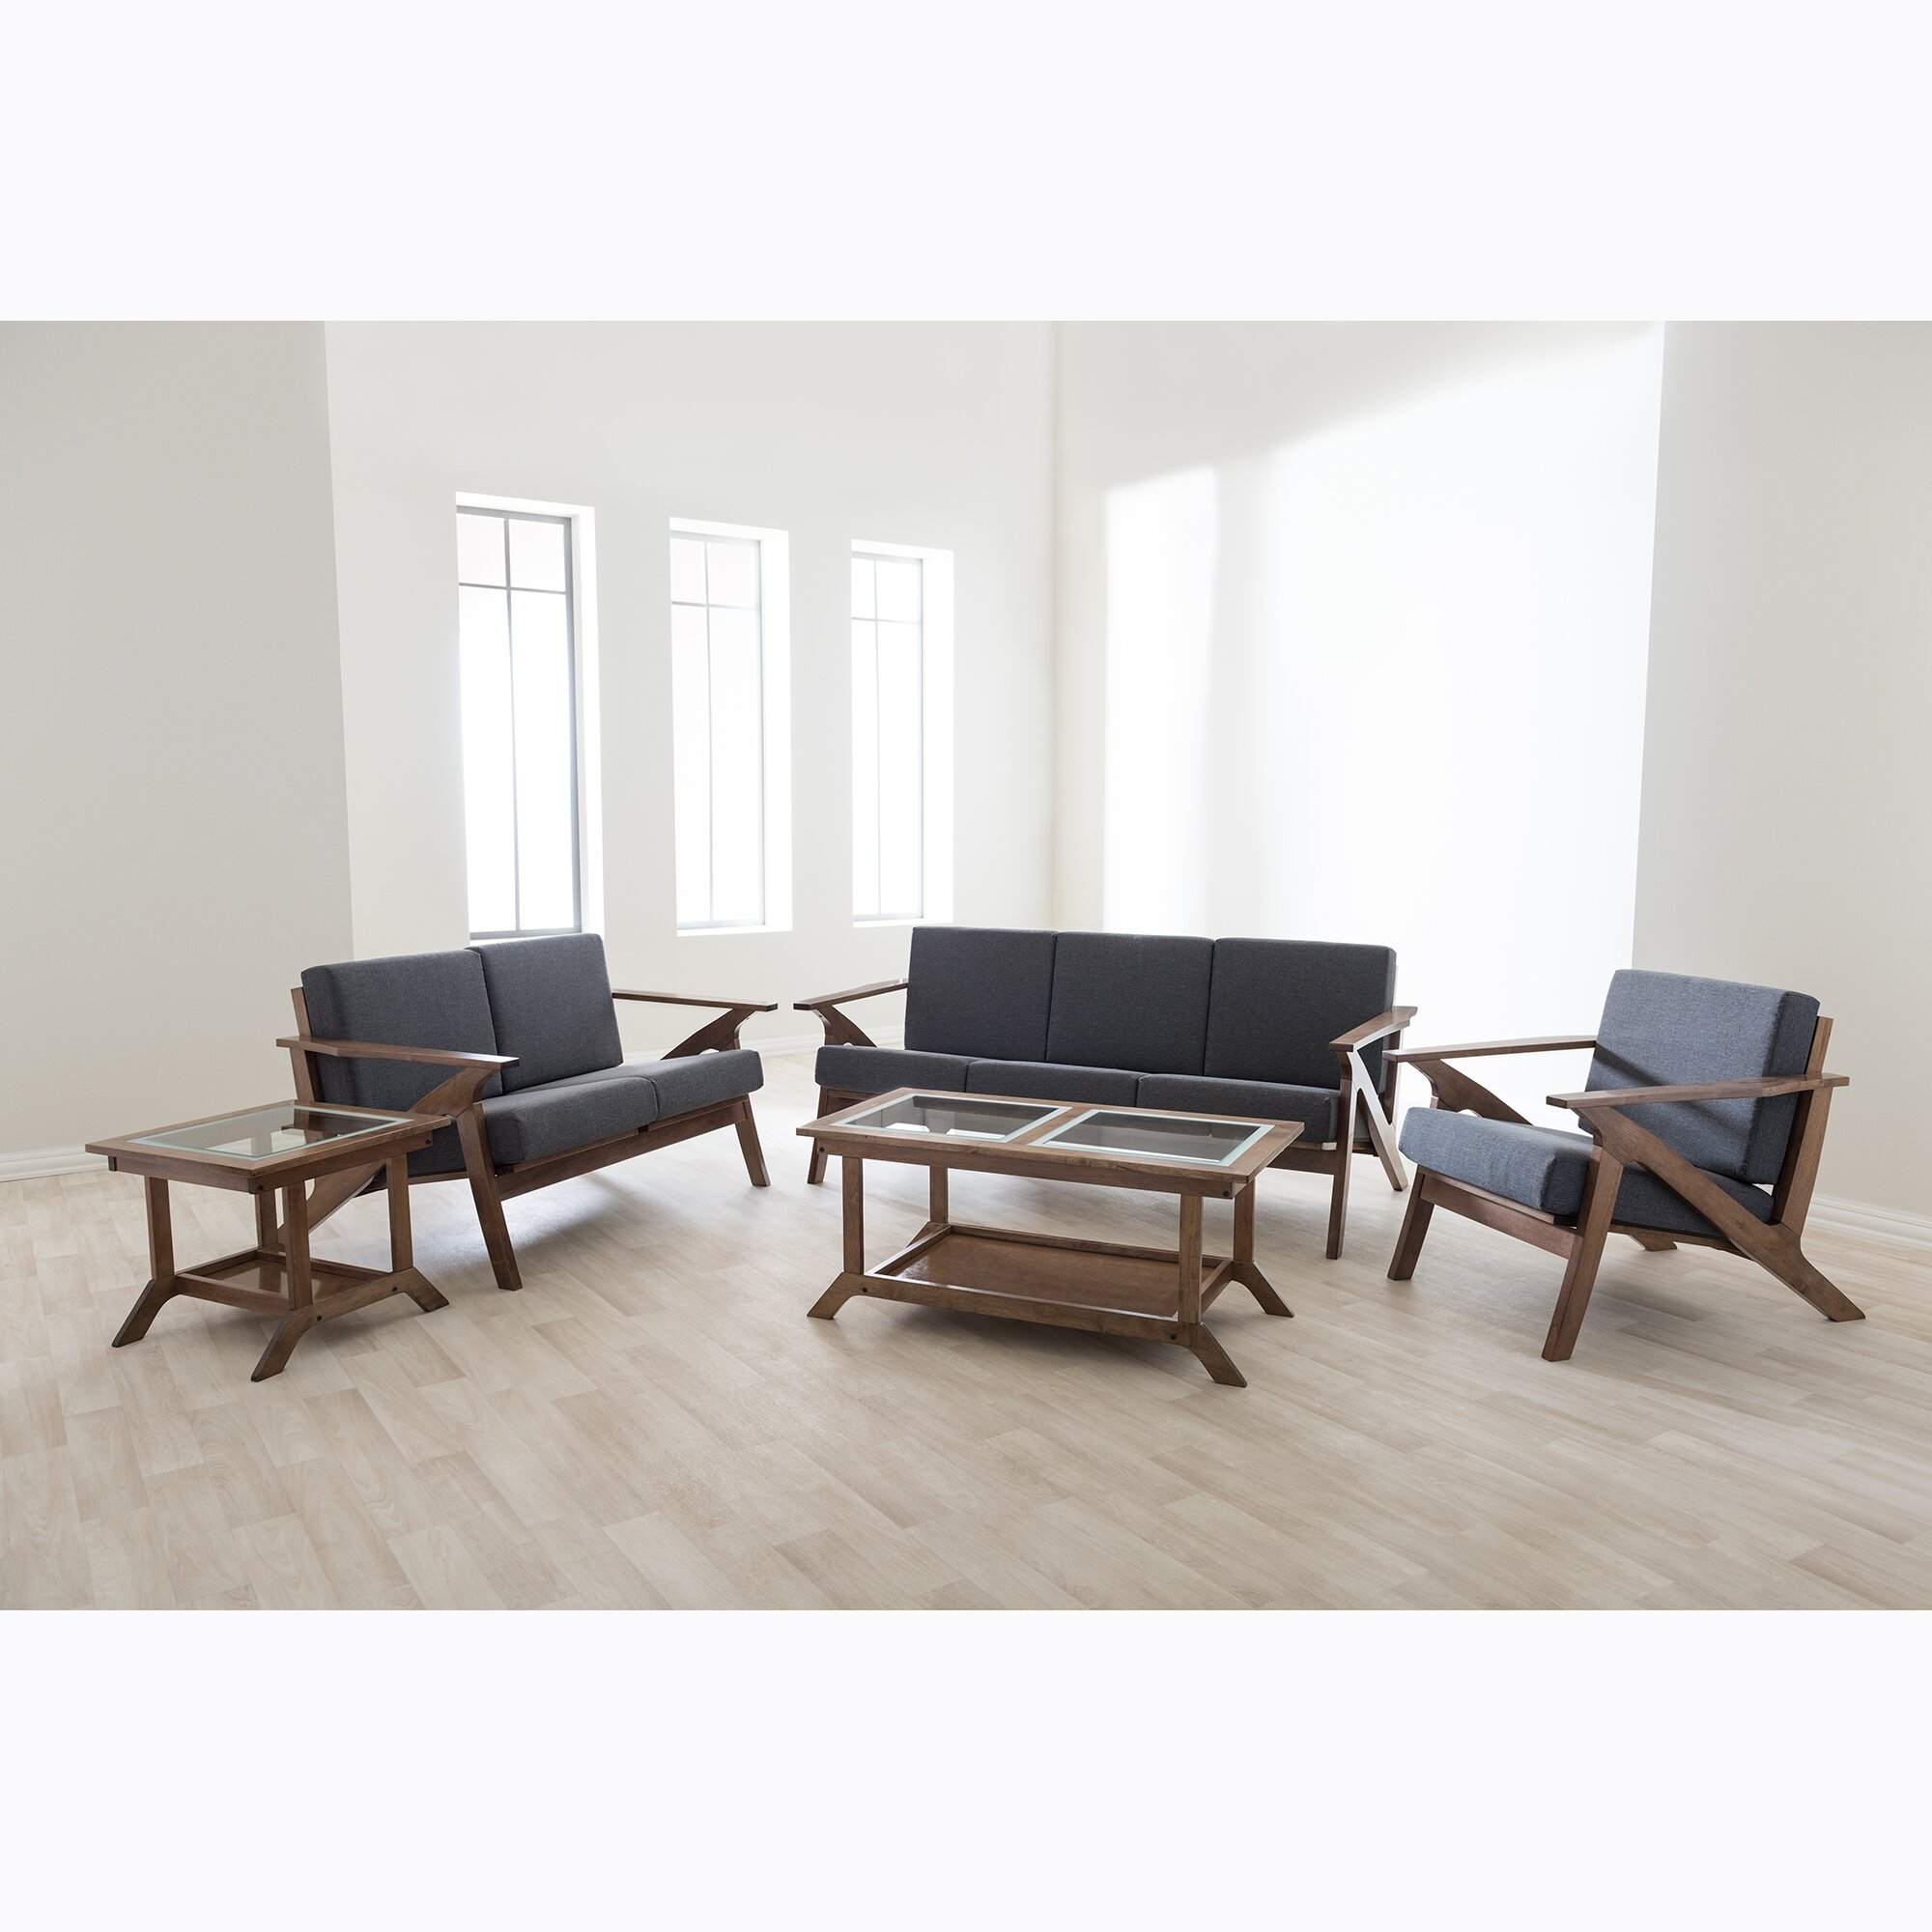 5 Piece Living Room Set Of Wholesale Interiors Baxton Studio 5 Piece Living Room Set